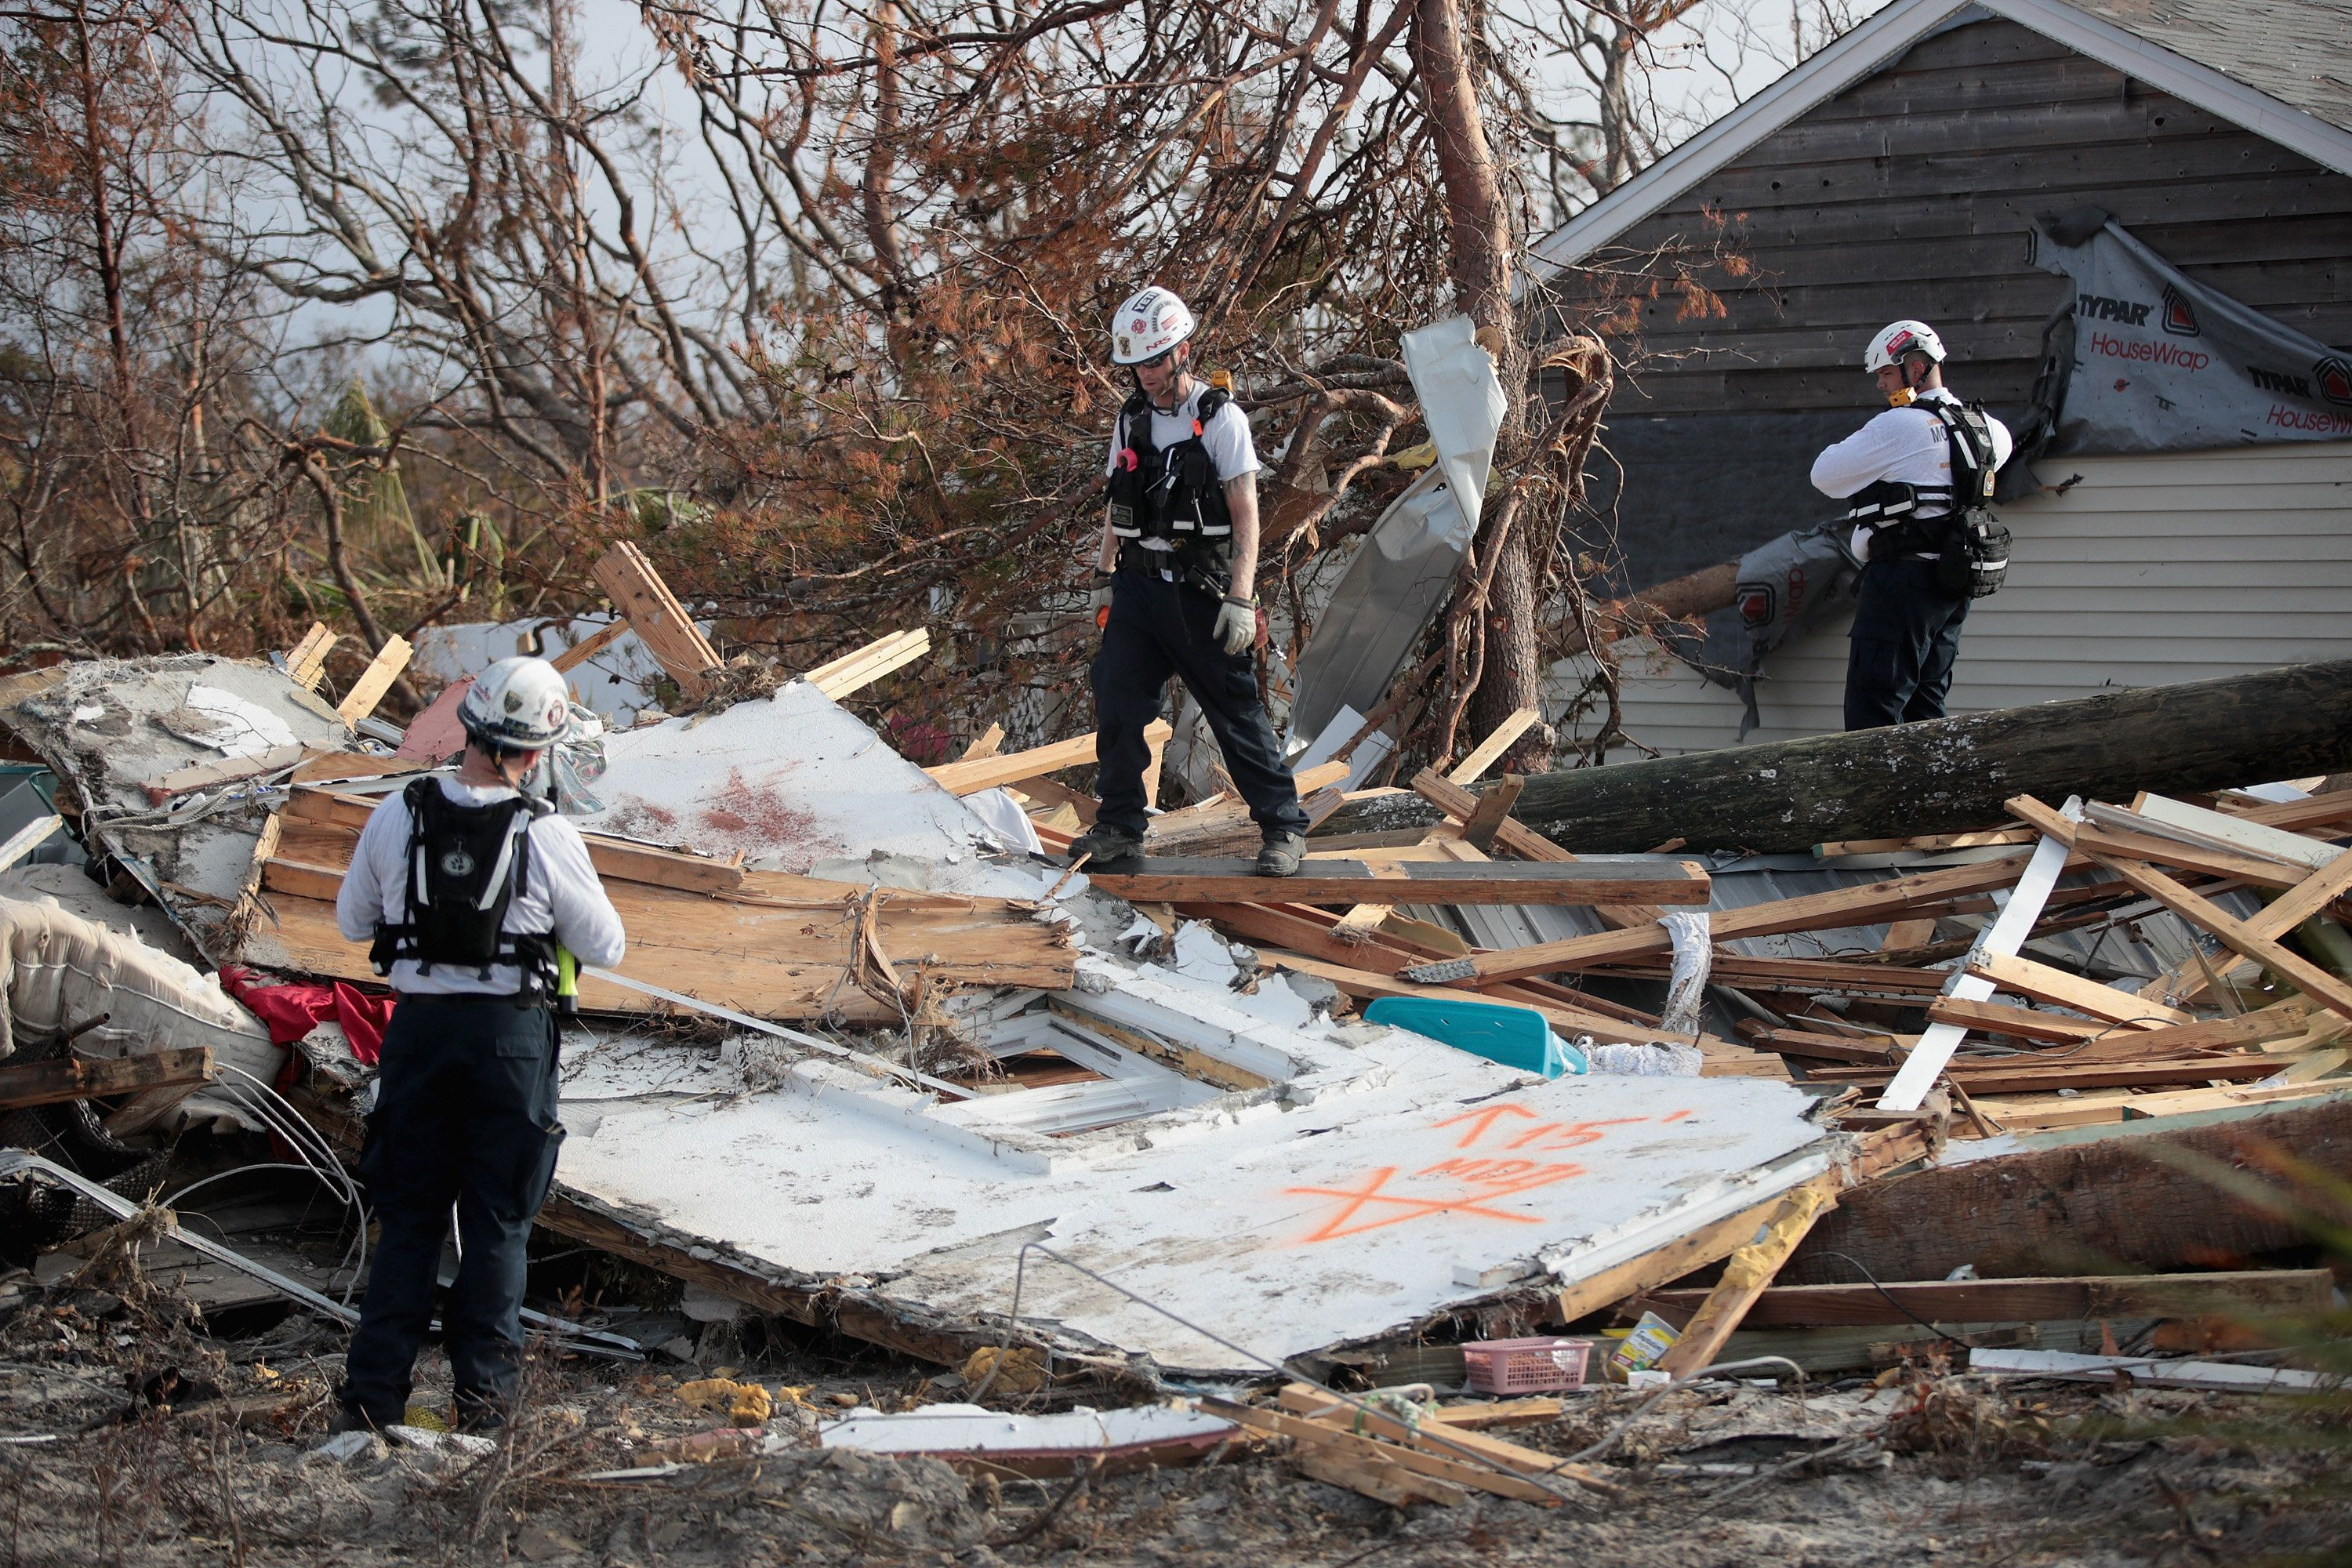 MEXICO BEACH, FL - OCTOBER 16: Members of the Maryland Task Force urban search and rescue team mark a location for a detailed search after getting a reaction from their cadaver dog indicating a possible victim of Hurricane Michael on October 16, 2018 in Mexico Beach, Florida. Hurricane Michael slammed into the Florida Panhandle on October 10, as a category 4 storm, claiming at least 19 lives and causing massive damage.  (Photo by Scott Olson/Getty Images)